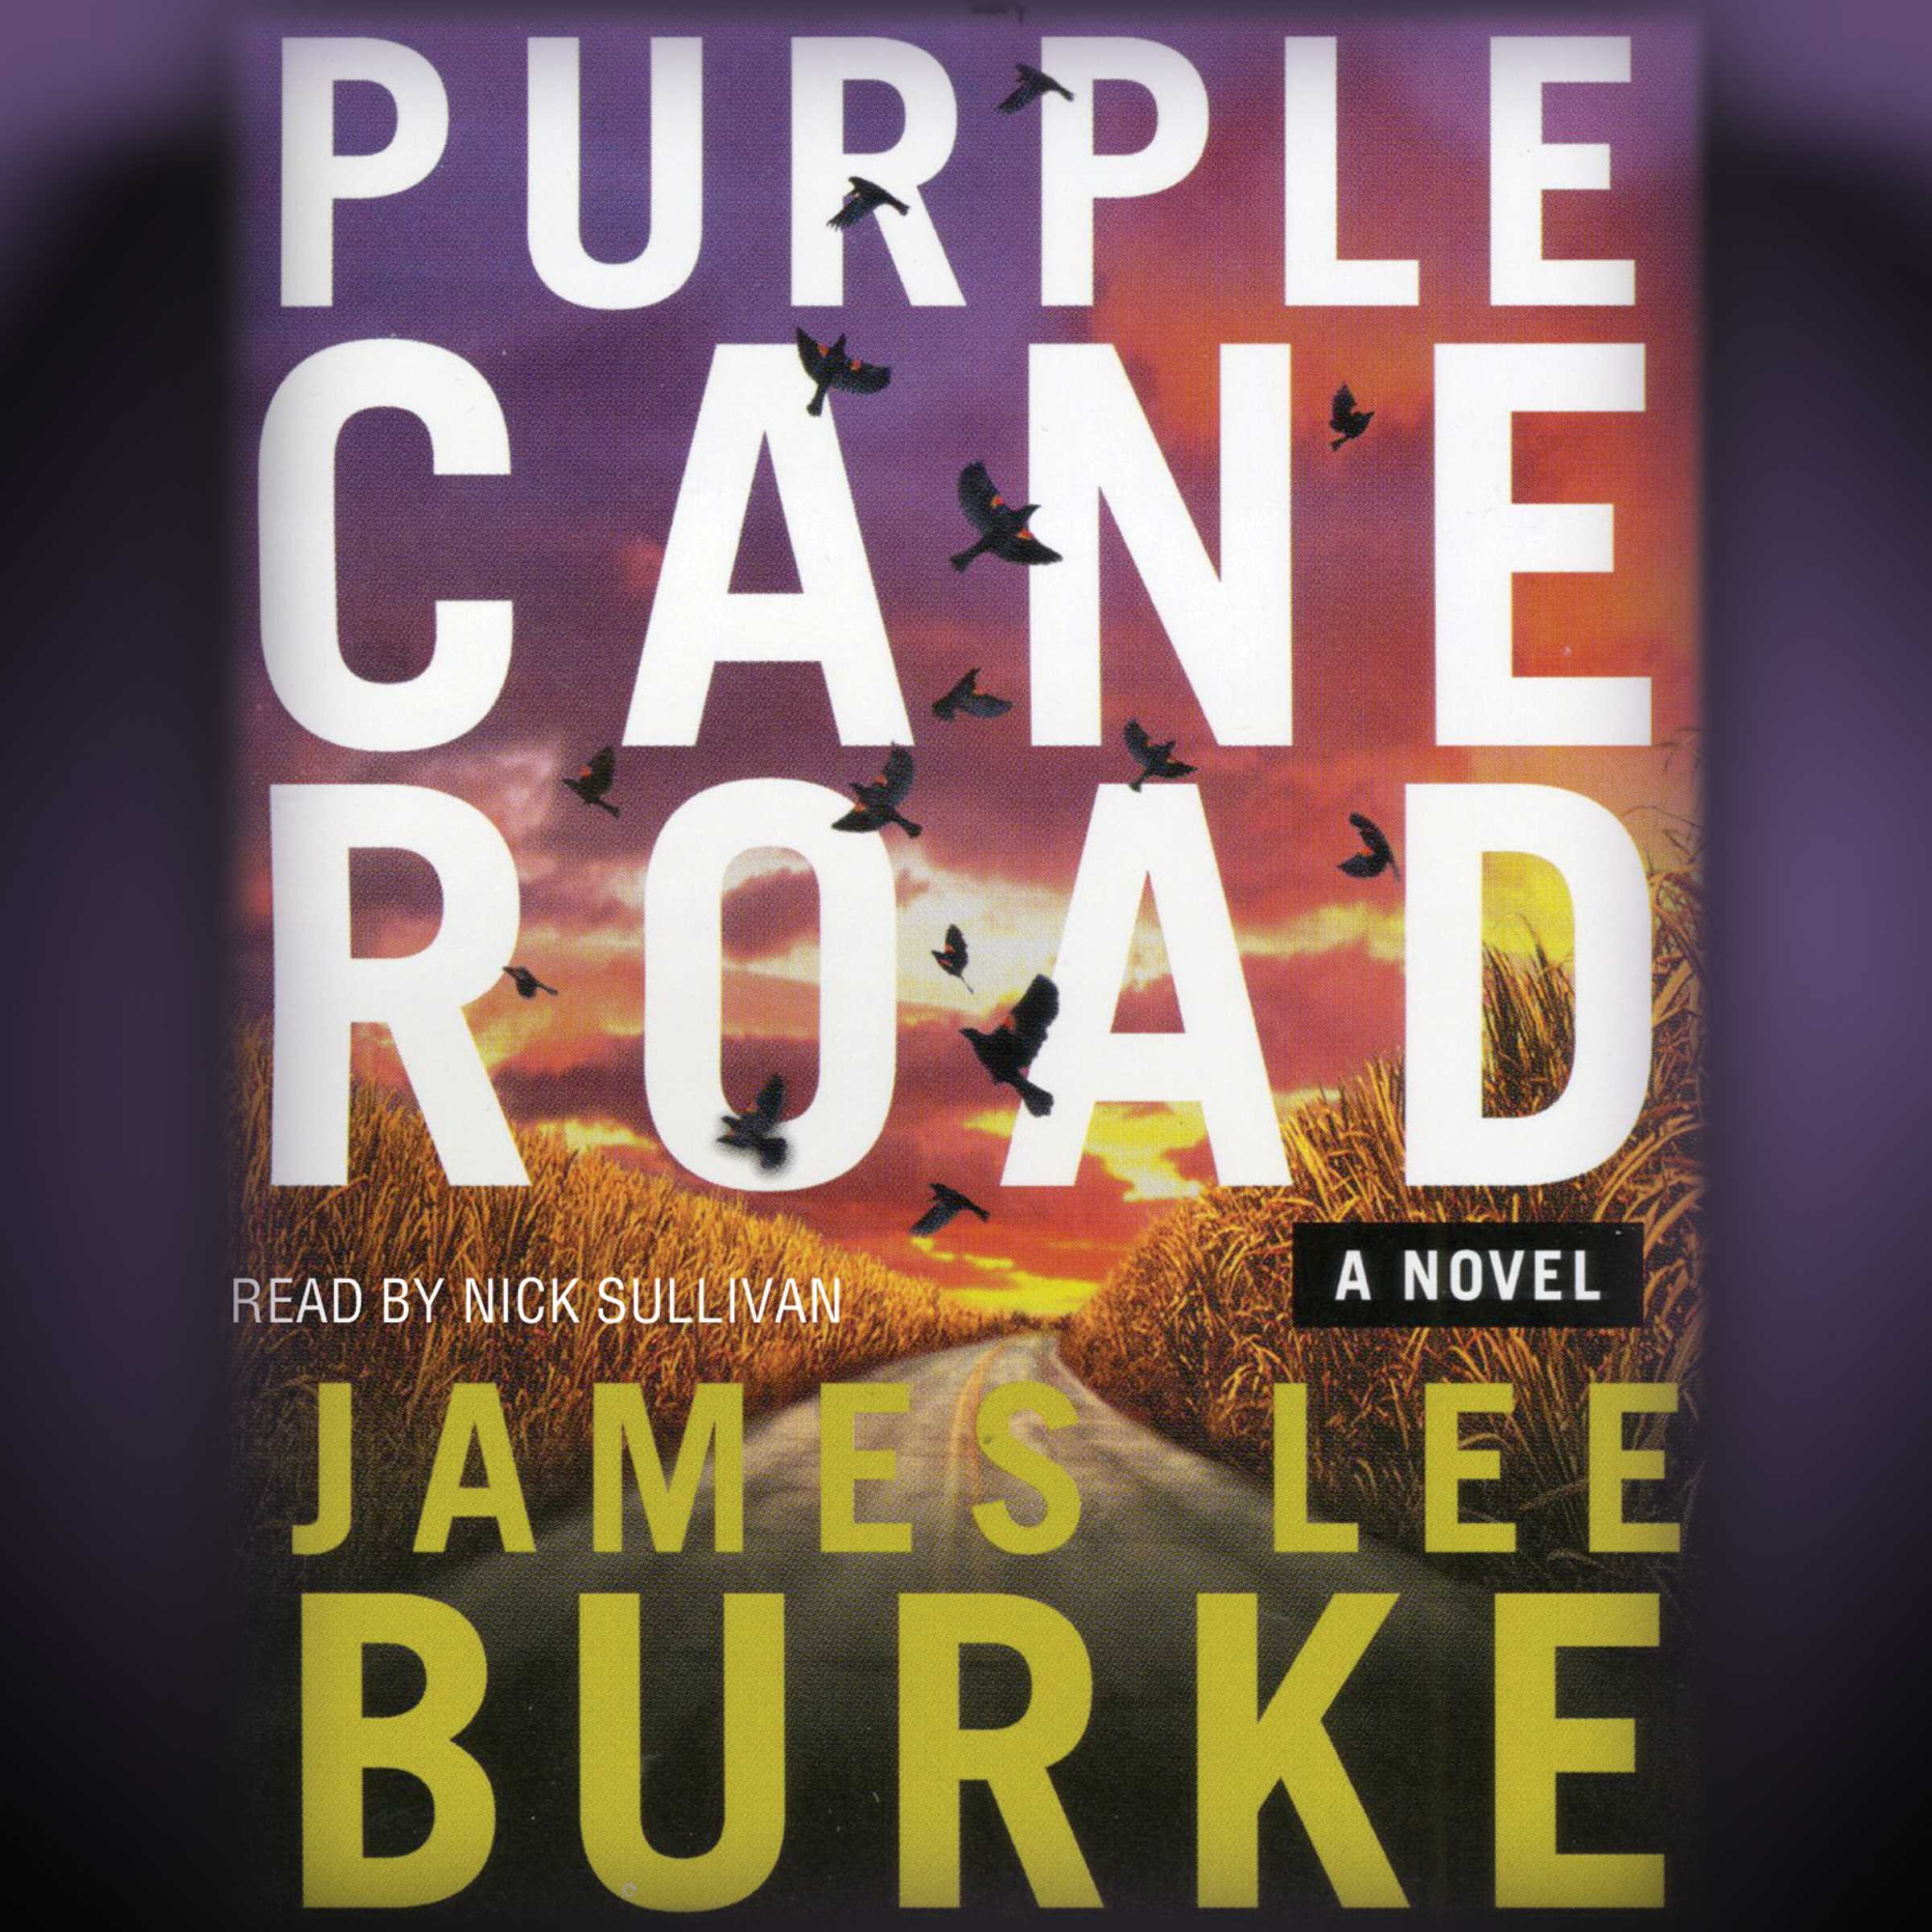 Purple-cane-road-9780743548281_hr